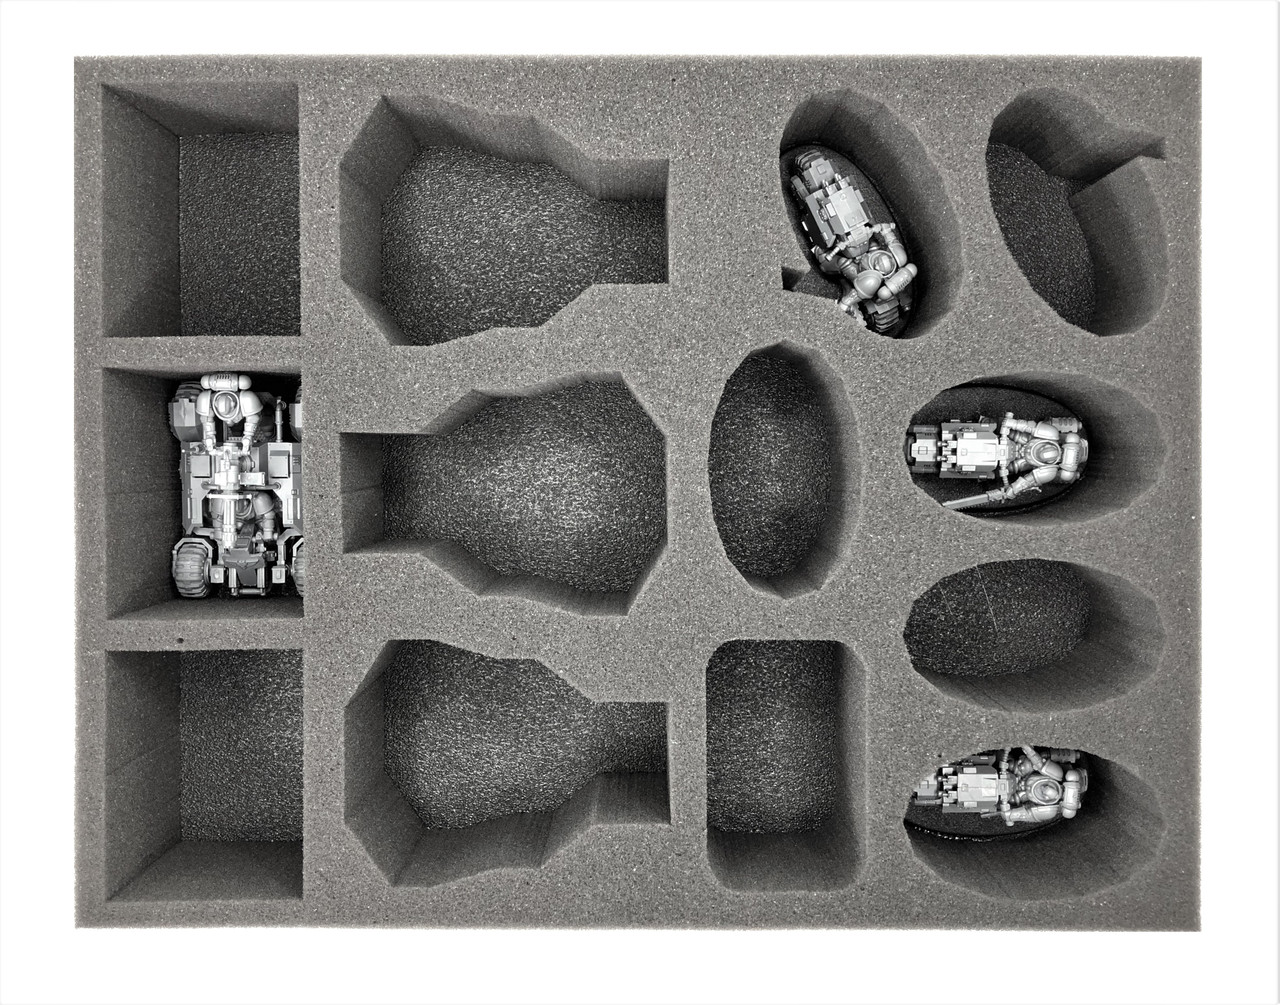 Space Marine 3 Primaris Invader Atv 3 Land Speeder 6 Primaris Outrider Foam Tray Bfl 3 Battle Foam 1.5 inch (38 mm) thick tray with 33x 2 1/8 x 1 1/4 inch (53 x 31 mm) cut outs. space marine 3 primaris invader atv 3 land speeder 6 primaris outrider foam tray bfl 3